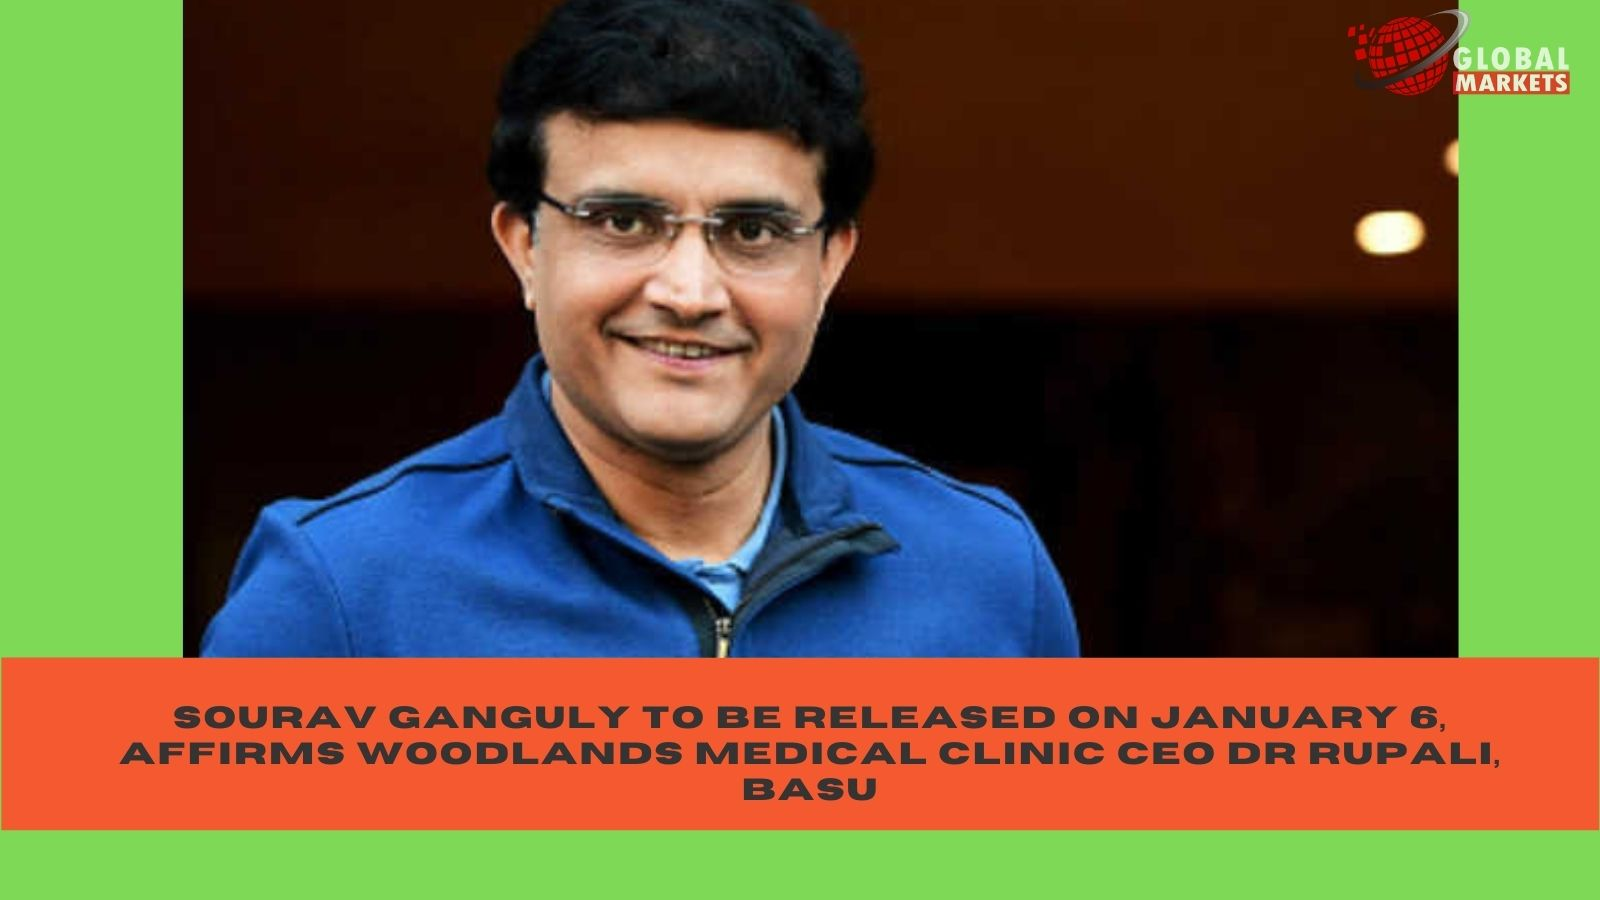 Sourav Ganguly to be released on January 6, affirms Woodlands medical clinic CEO Dr Rupali, Basu